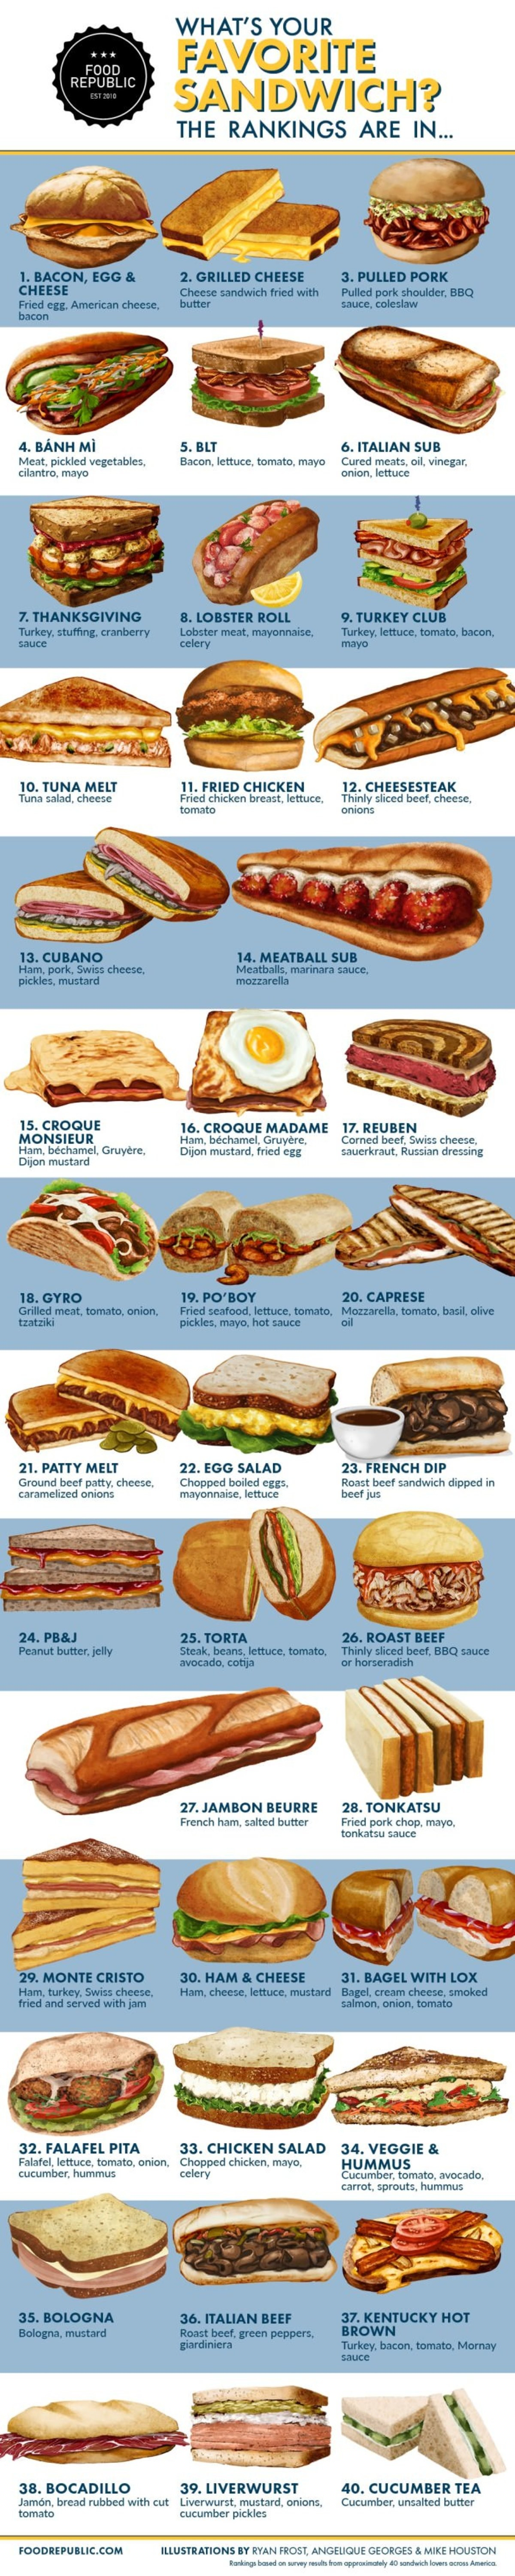 Favorite Sandwich. Which sandwich is your favorite?.. Your sample size, was 40 people. 40!? right off the tip of my dickComment edited at .